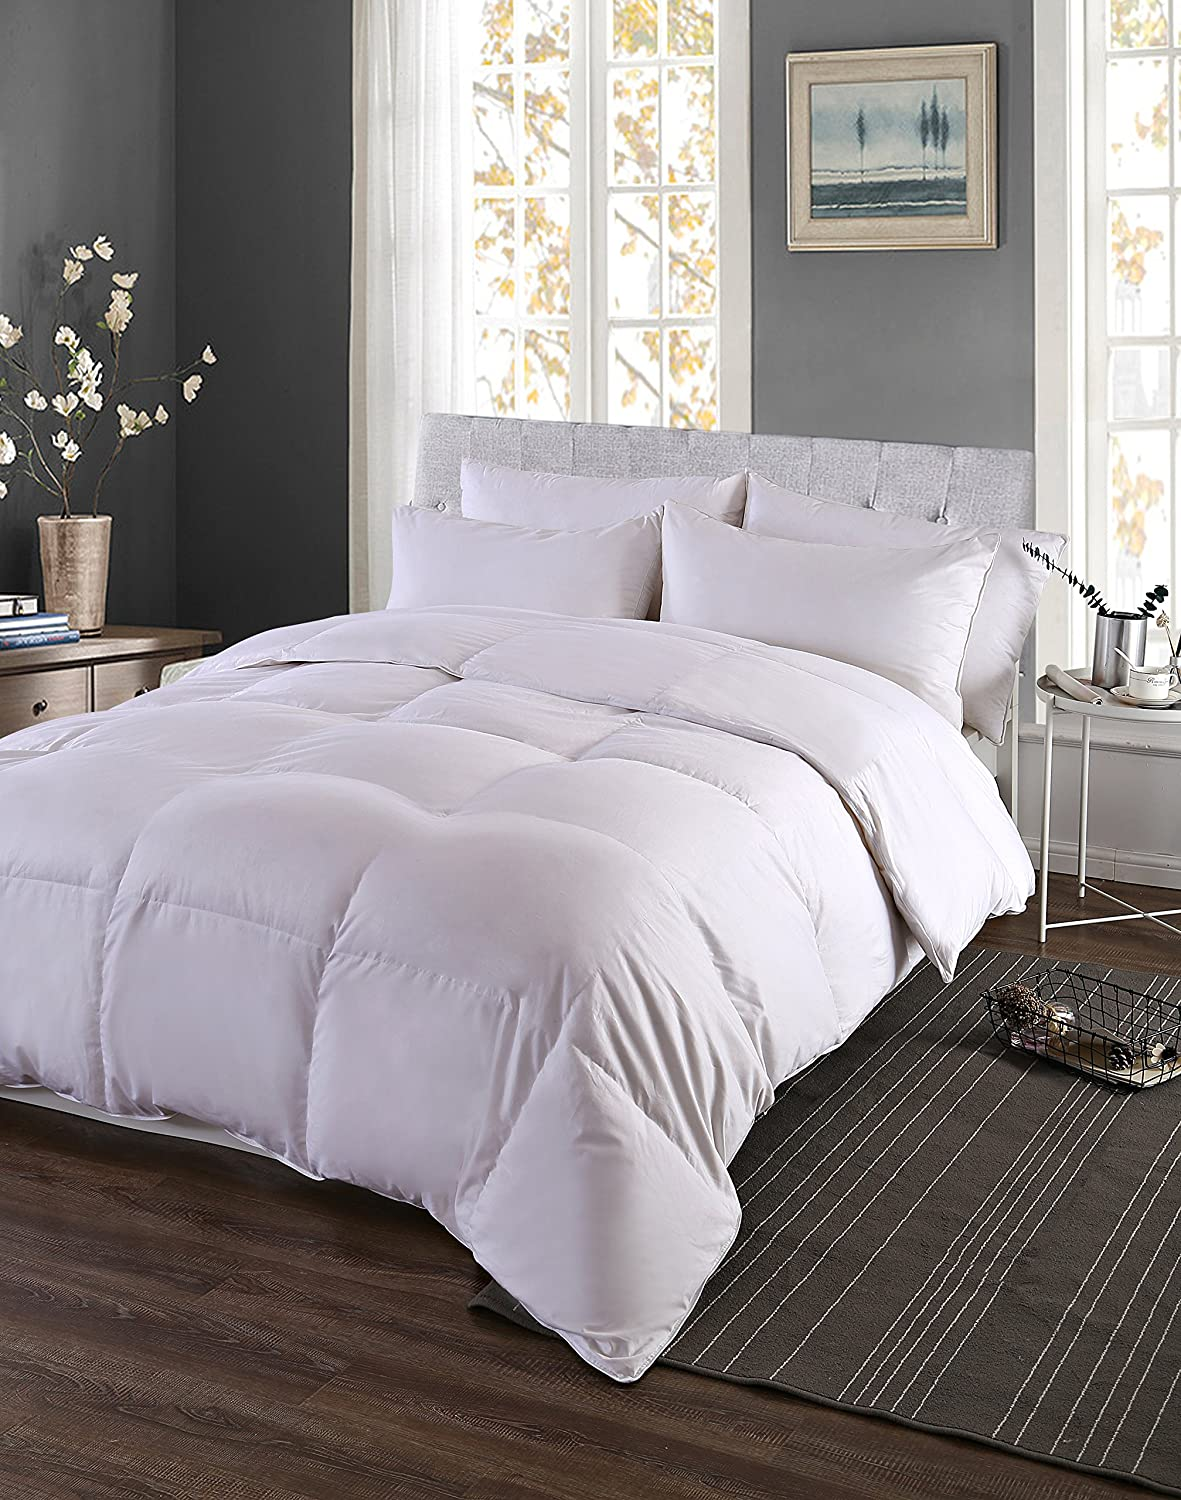 Palais Bedding Luxurious White Goose Down Comforter King Size 33 oz, 340TC - 600 Fill Power - 100% Cotton Shell Down Proof Baffle Boxes Construction, Soft and Warm for All Seasons, White